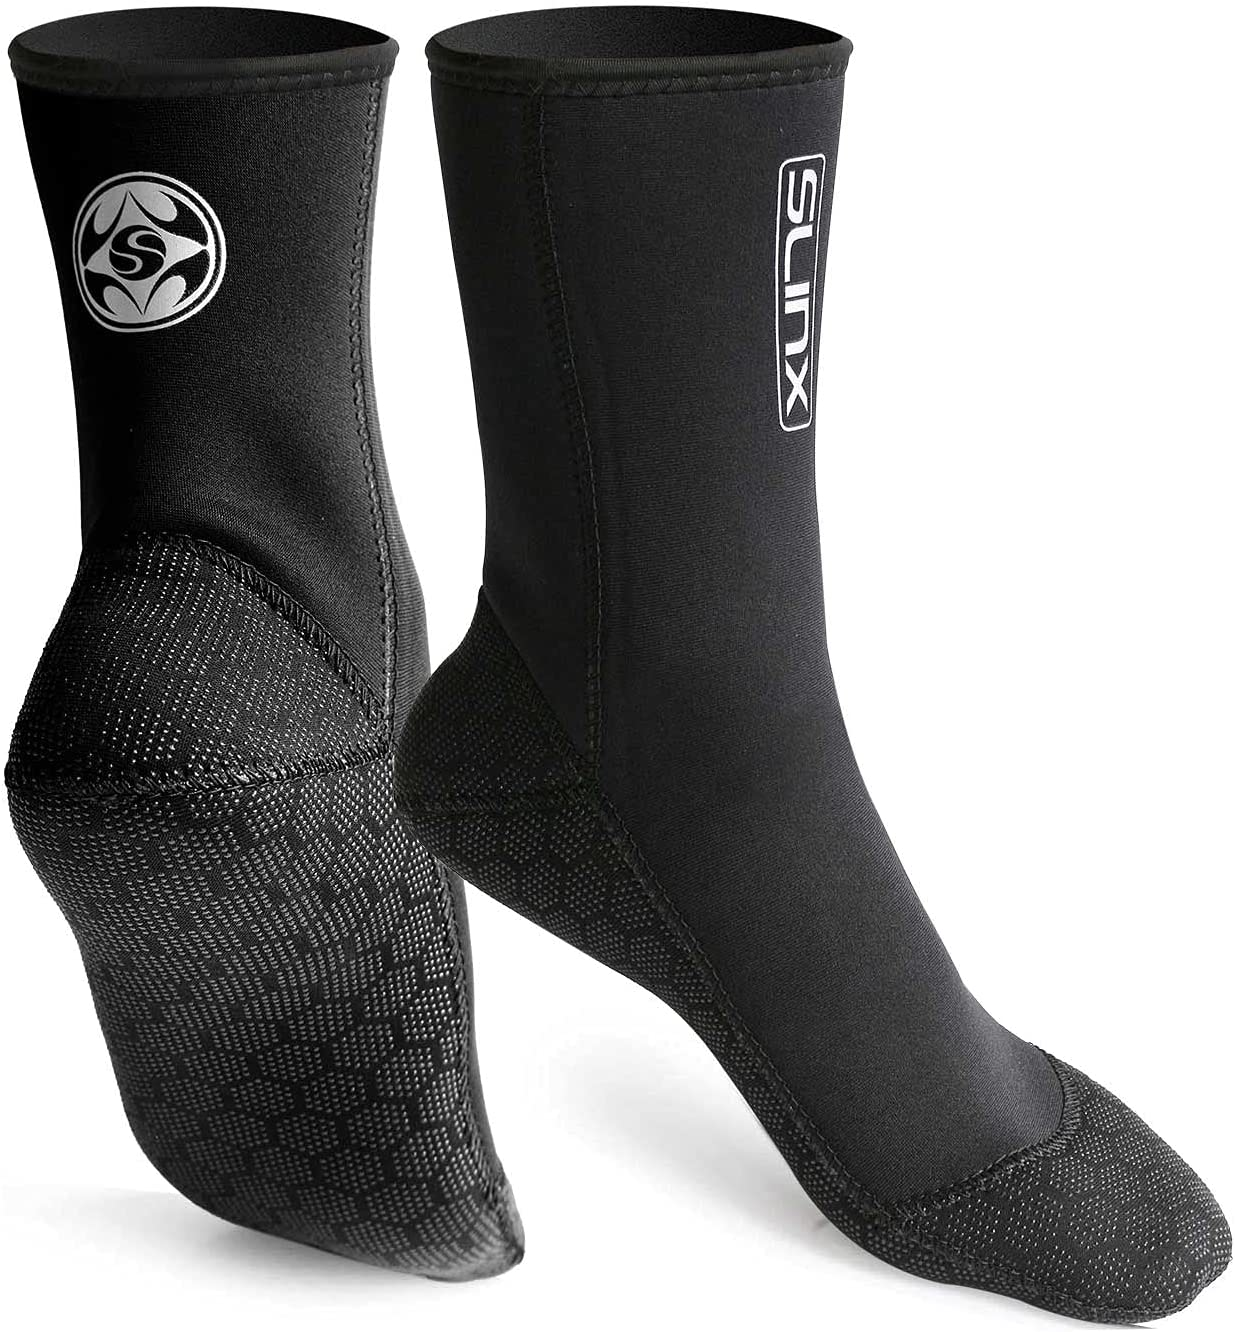 Limited price sale Max 52% OFF SLINX S Neoprene Water Fin Sock Wom Wetsuits for 3MM Diving